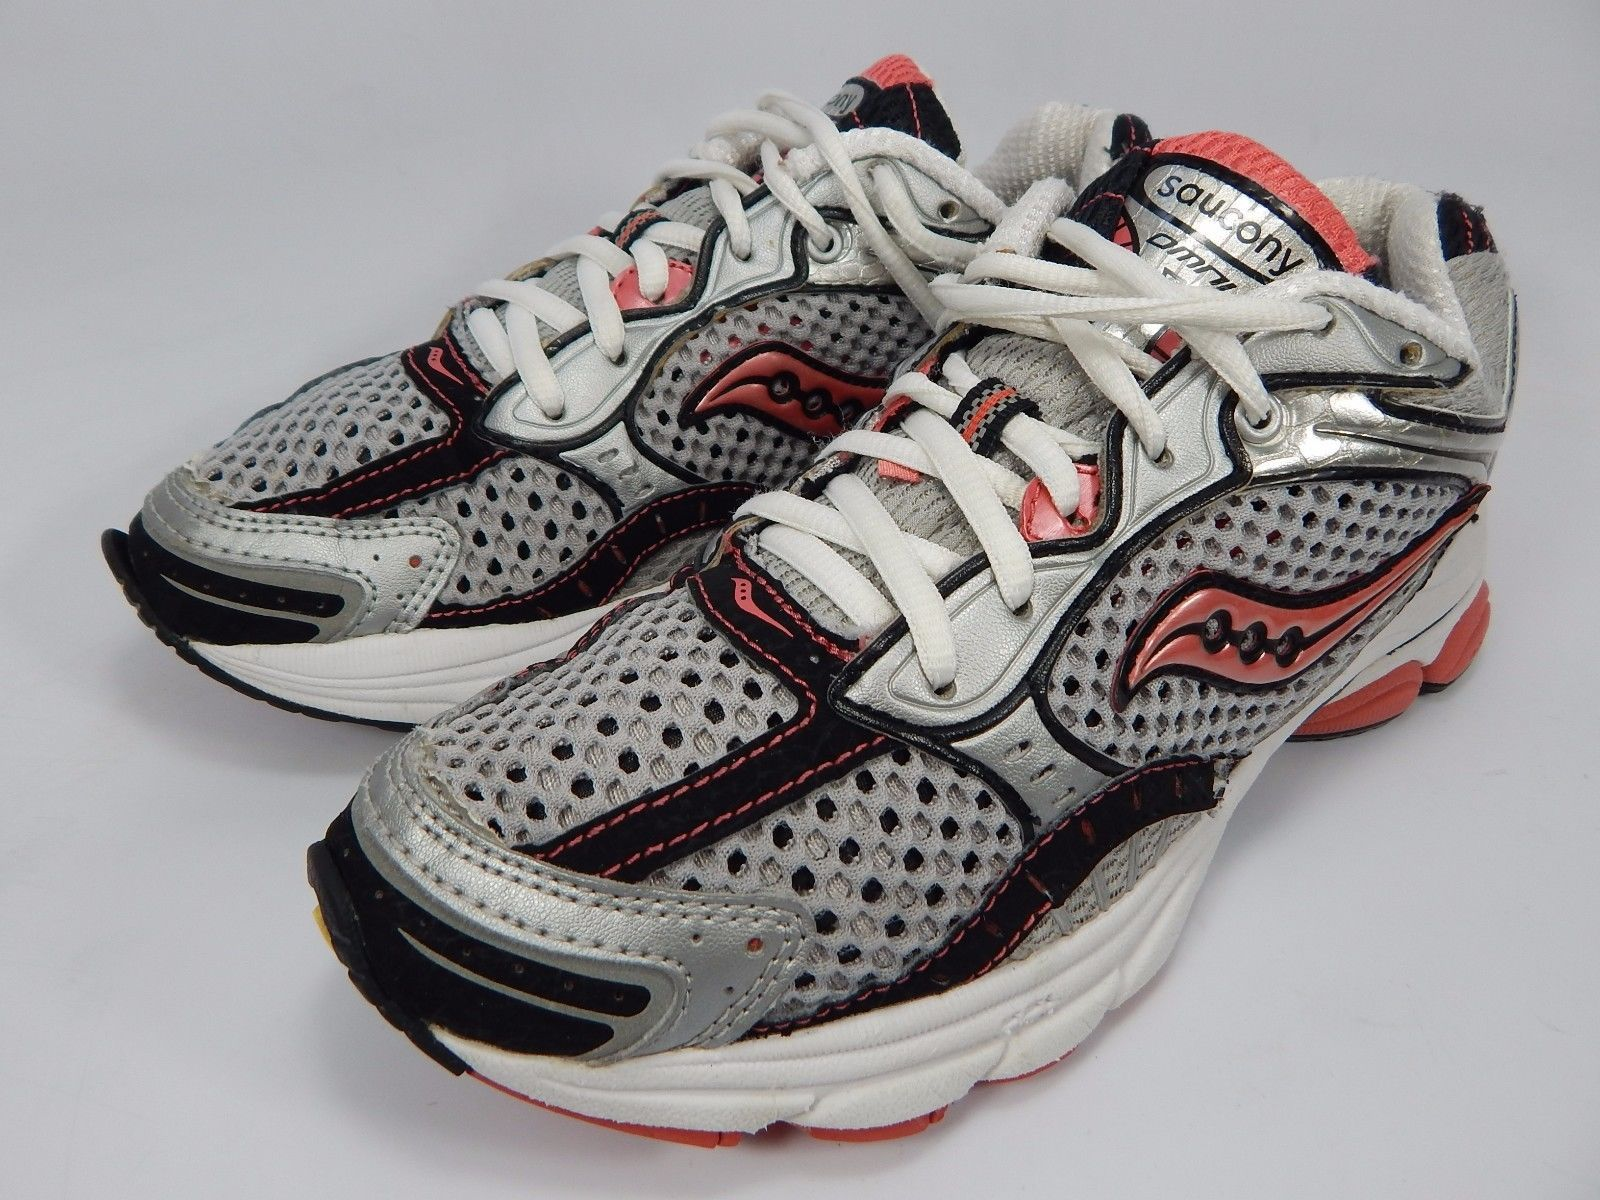 Saucony Omni 7 Women's Running Shoes Size US 8 M (B) EU 39 Silver 10018-2